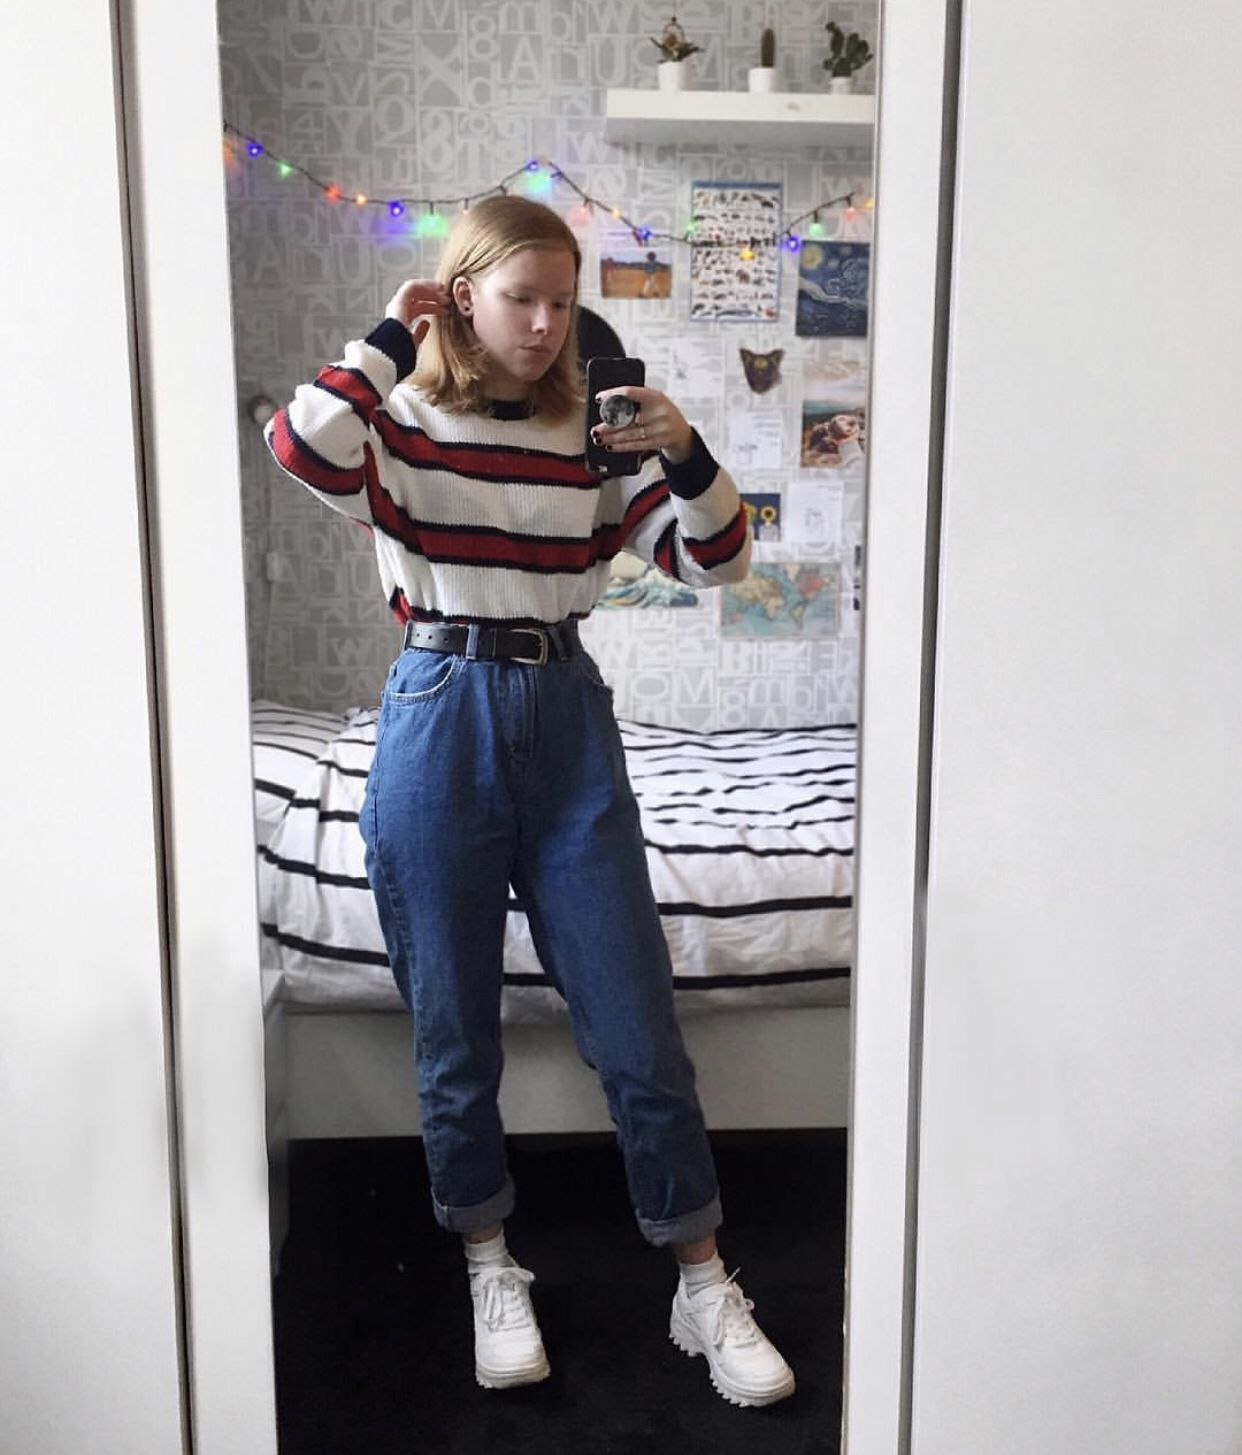 Outfits Grunge Fashion Vintage Clothes Art Aesthetic Tumblr Colortrends Colour Shoes Cute 90s Style Inspiration Thri Mom Jeans Dress Up Fashion